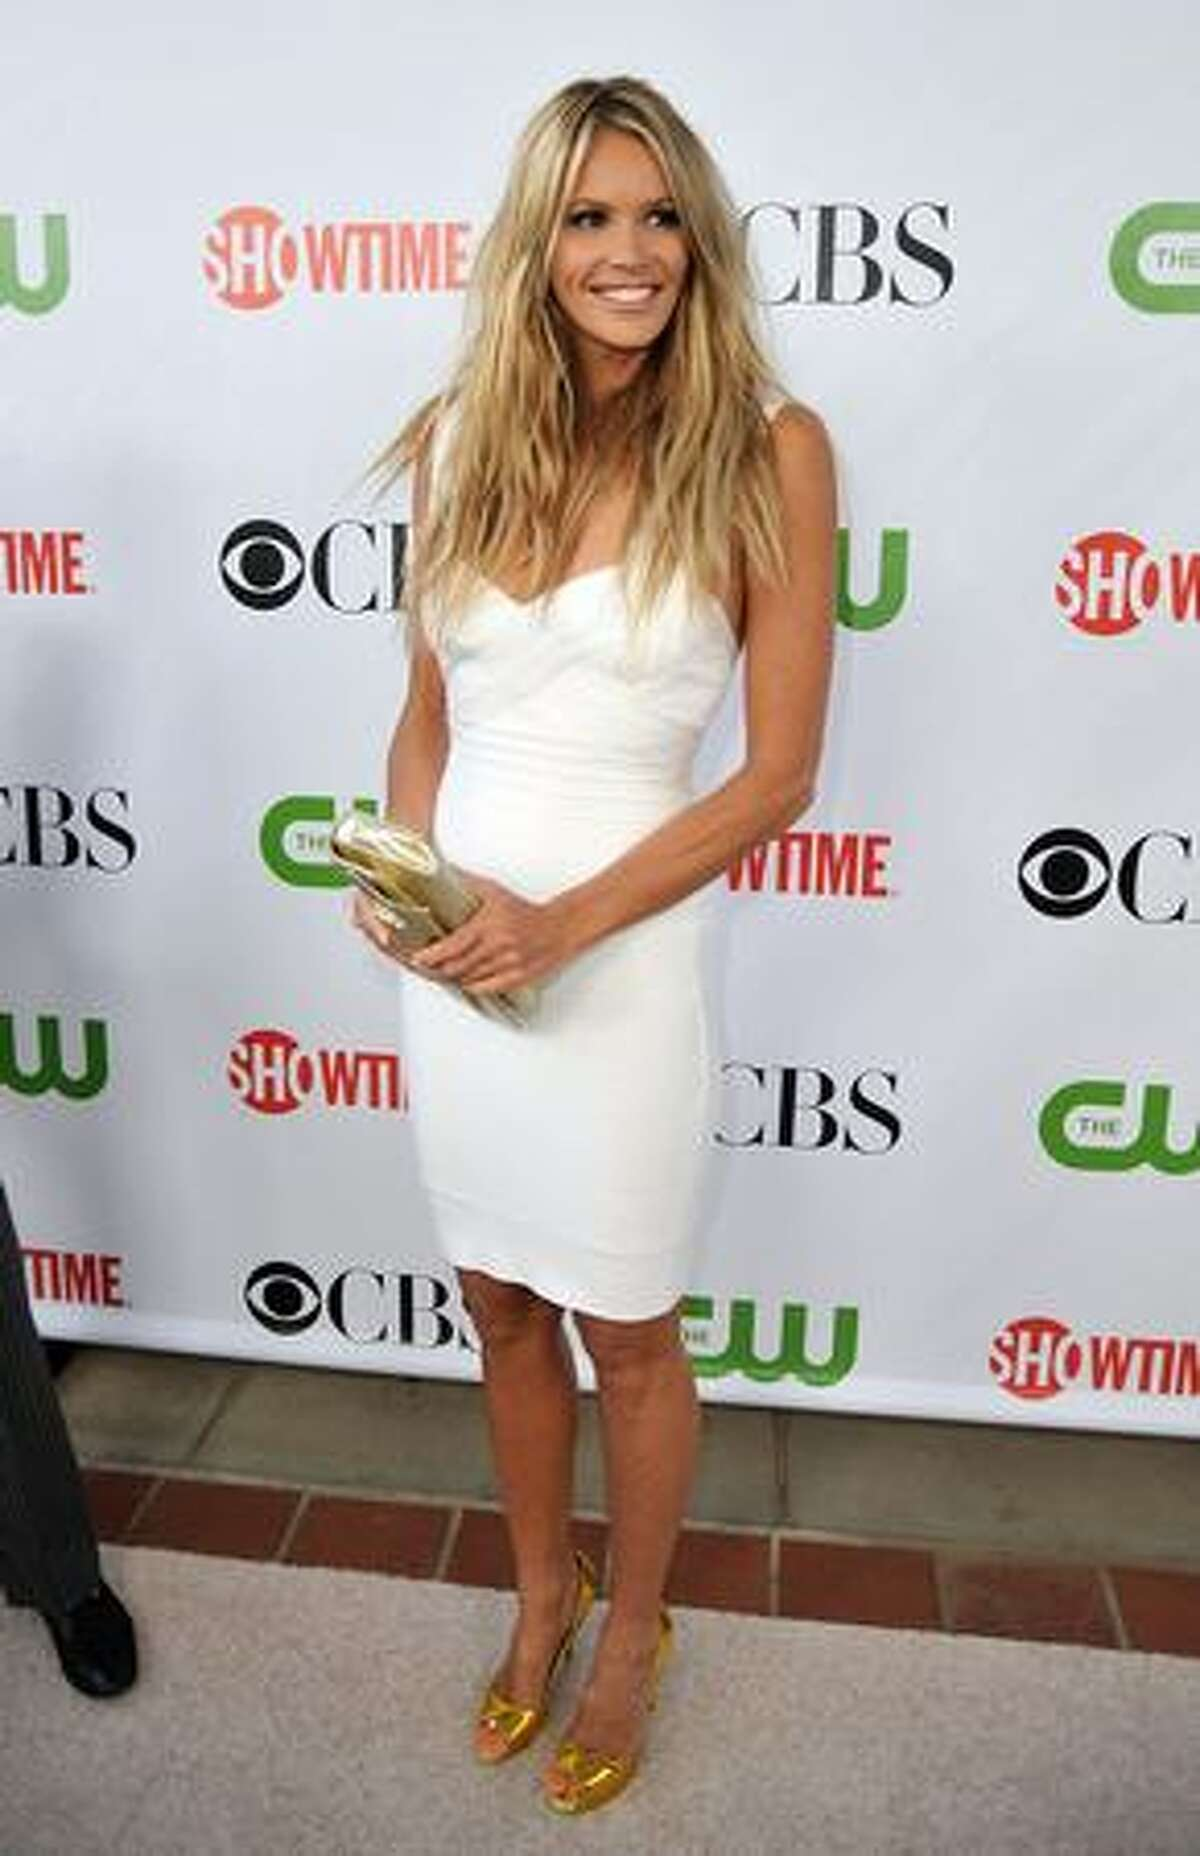 Actress Elle Macpherson arrives at the CBS, CW, CBS Television Studios & Showtime TCA party held at the Huntington Library in Pasadena, California.